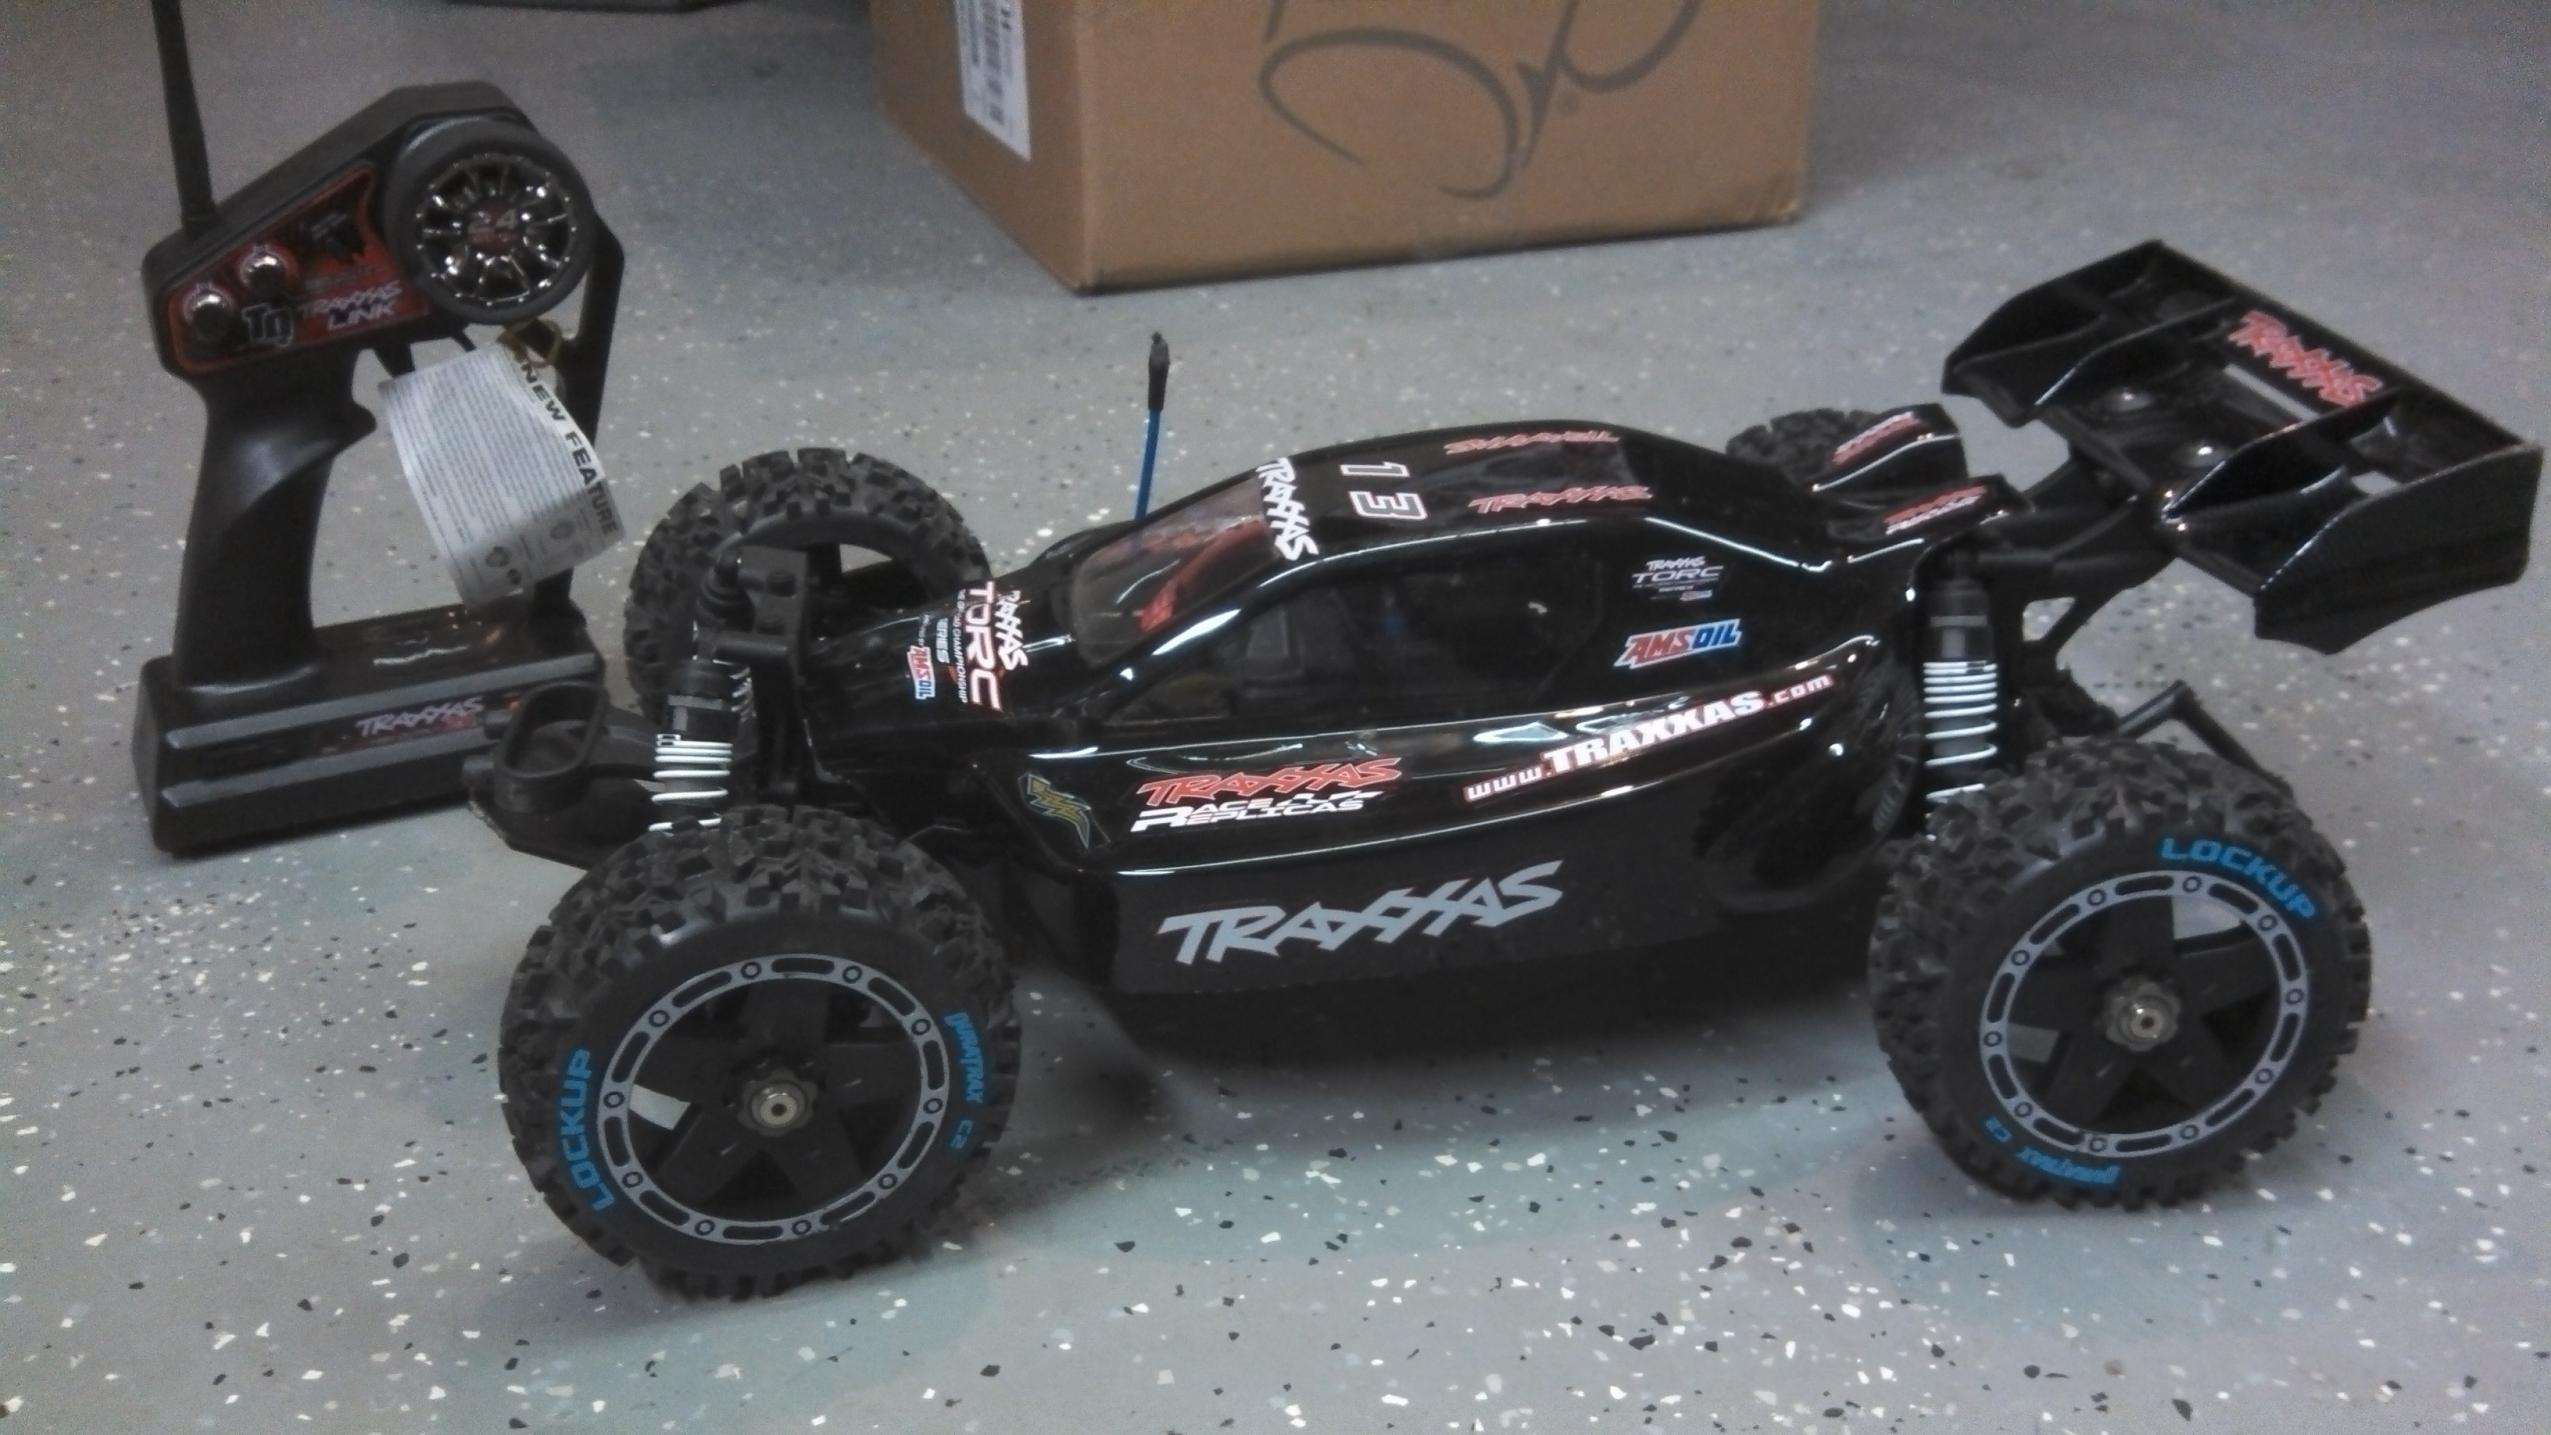 traxxas buggy 4x4 with 689154 Axial Wraith Traxxas Backslash 4x4 Sale Trade on Buggy Enfant 24ghz Servo Tronic 1 20 Carrera C2x15468834 as well 5000 Rc701g Tracker Rtr 4x4 24ghz Rc System furthermore 2 New Pro Line 2017 Ford F 150 Raptor Bodies as well 18 Electric RC Truck in addition Bigfoot Monster Truck.